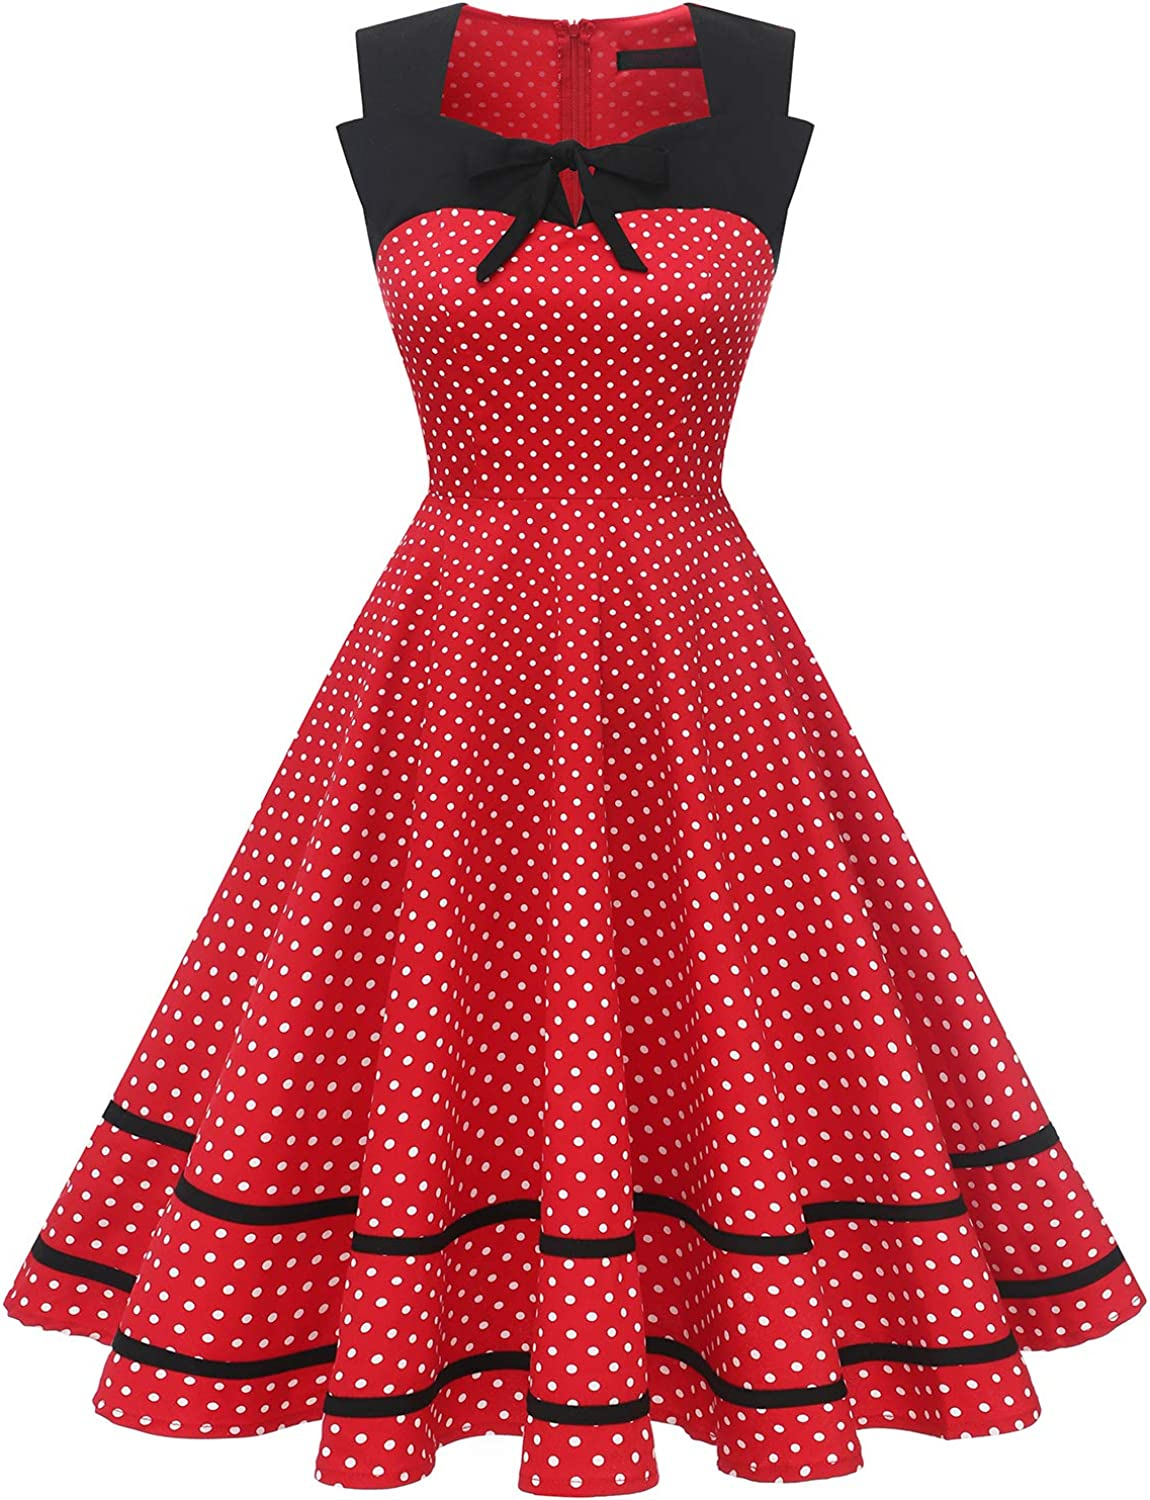 Vintage Polka Dot Dresses – 50s Spotty and Ditsy Prints Womens 50s Vintage Retro Pinup Style Cocktail Party Swing Wedding Dresses $29.99 AT vintagedancer.com